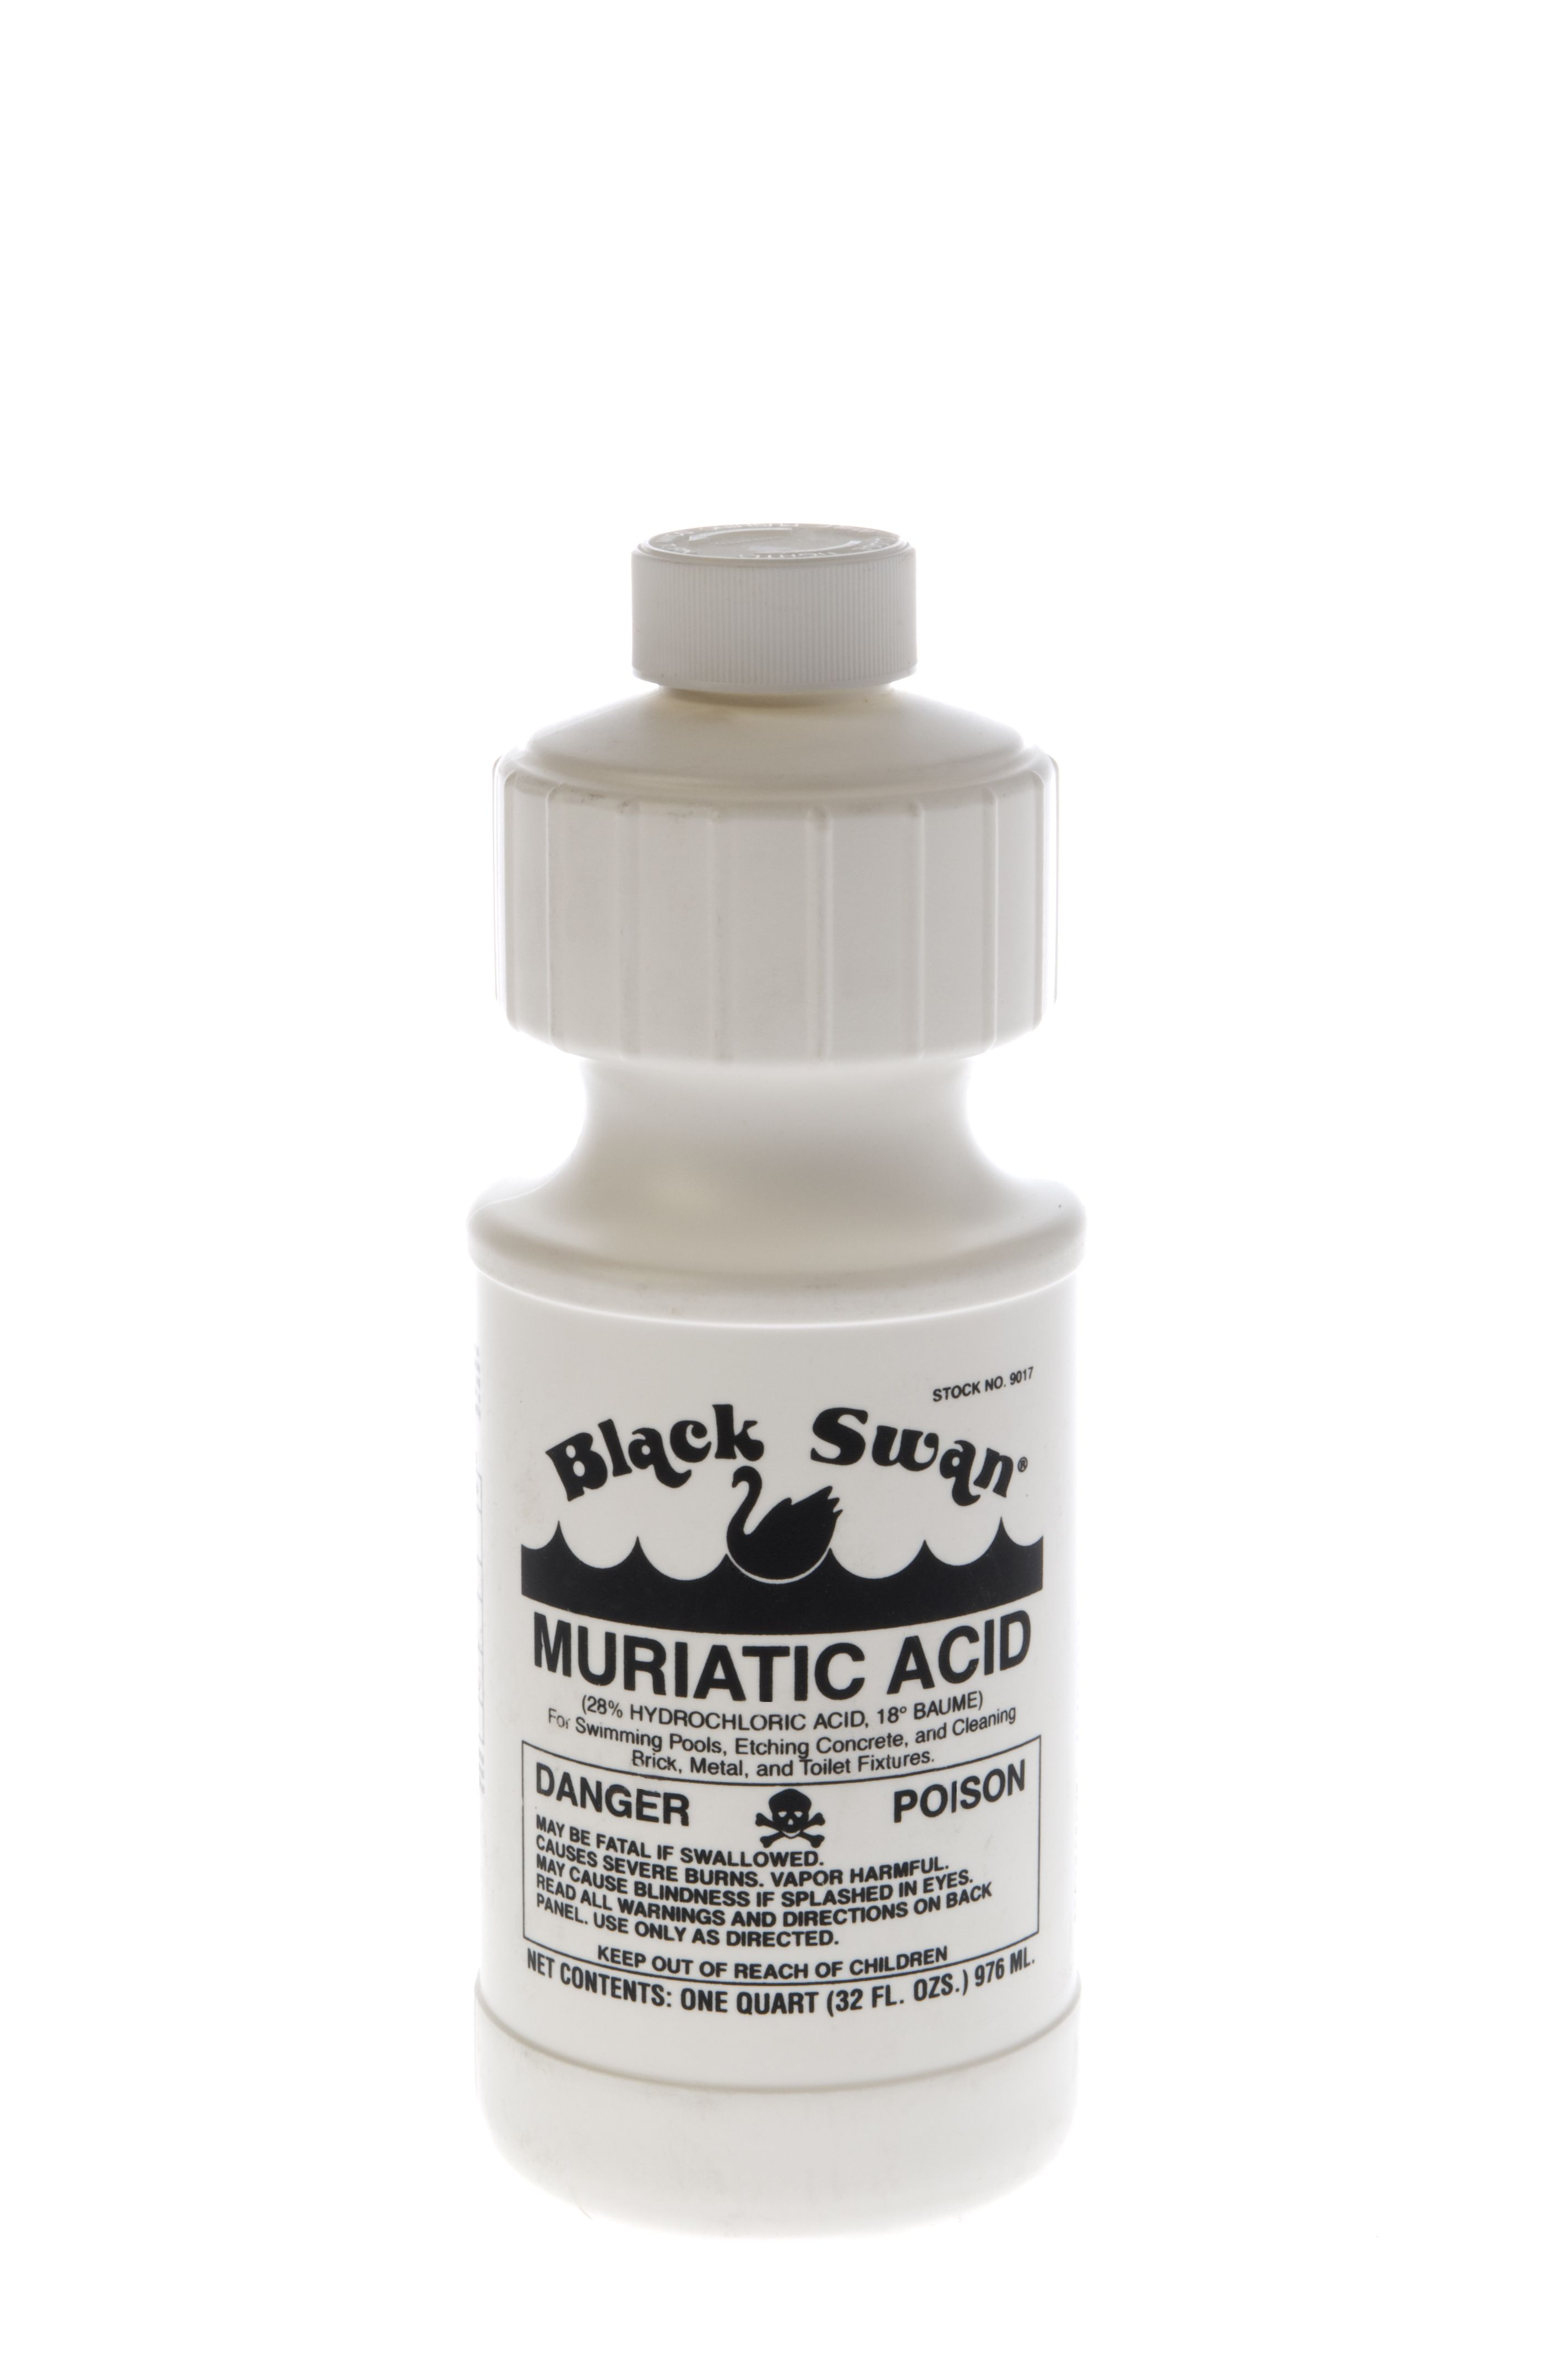 Black swan s 18 muriatic acid is 28 hydrochloric acid - How to use muriatic acid in swimming pools ...